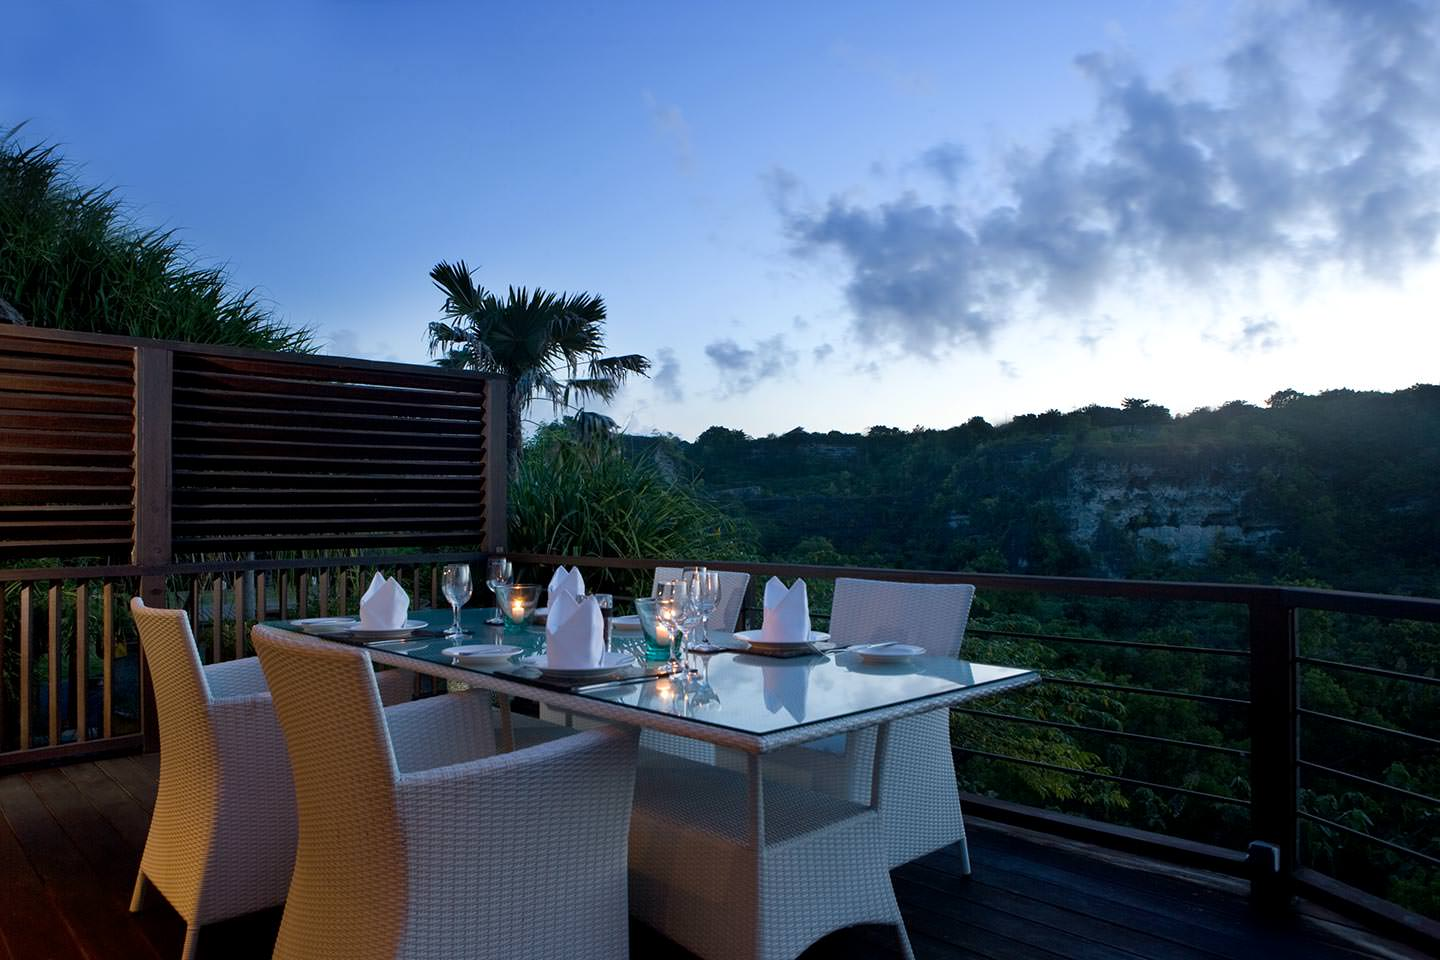 romantic candle light dinner with valley view at luxury 5 Star Resort in Jimbaran Bay